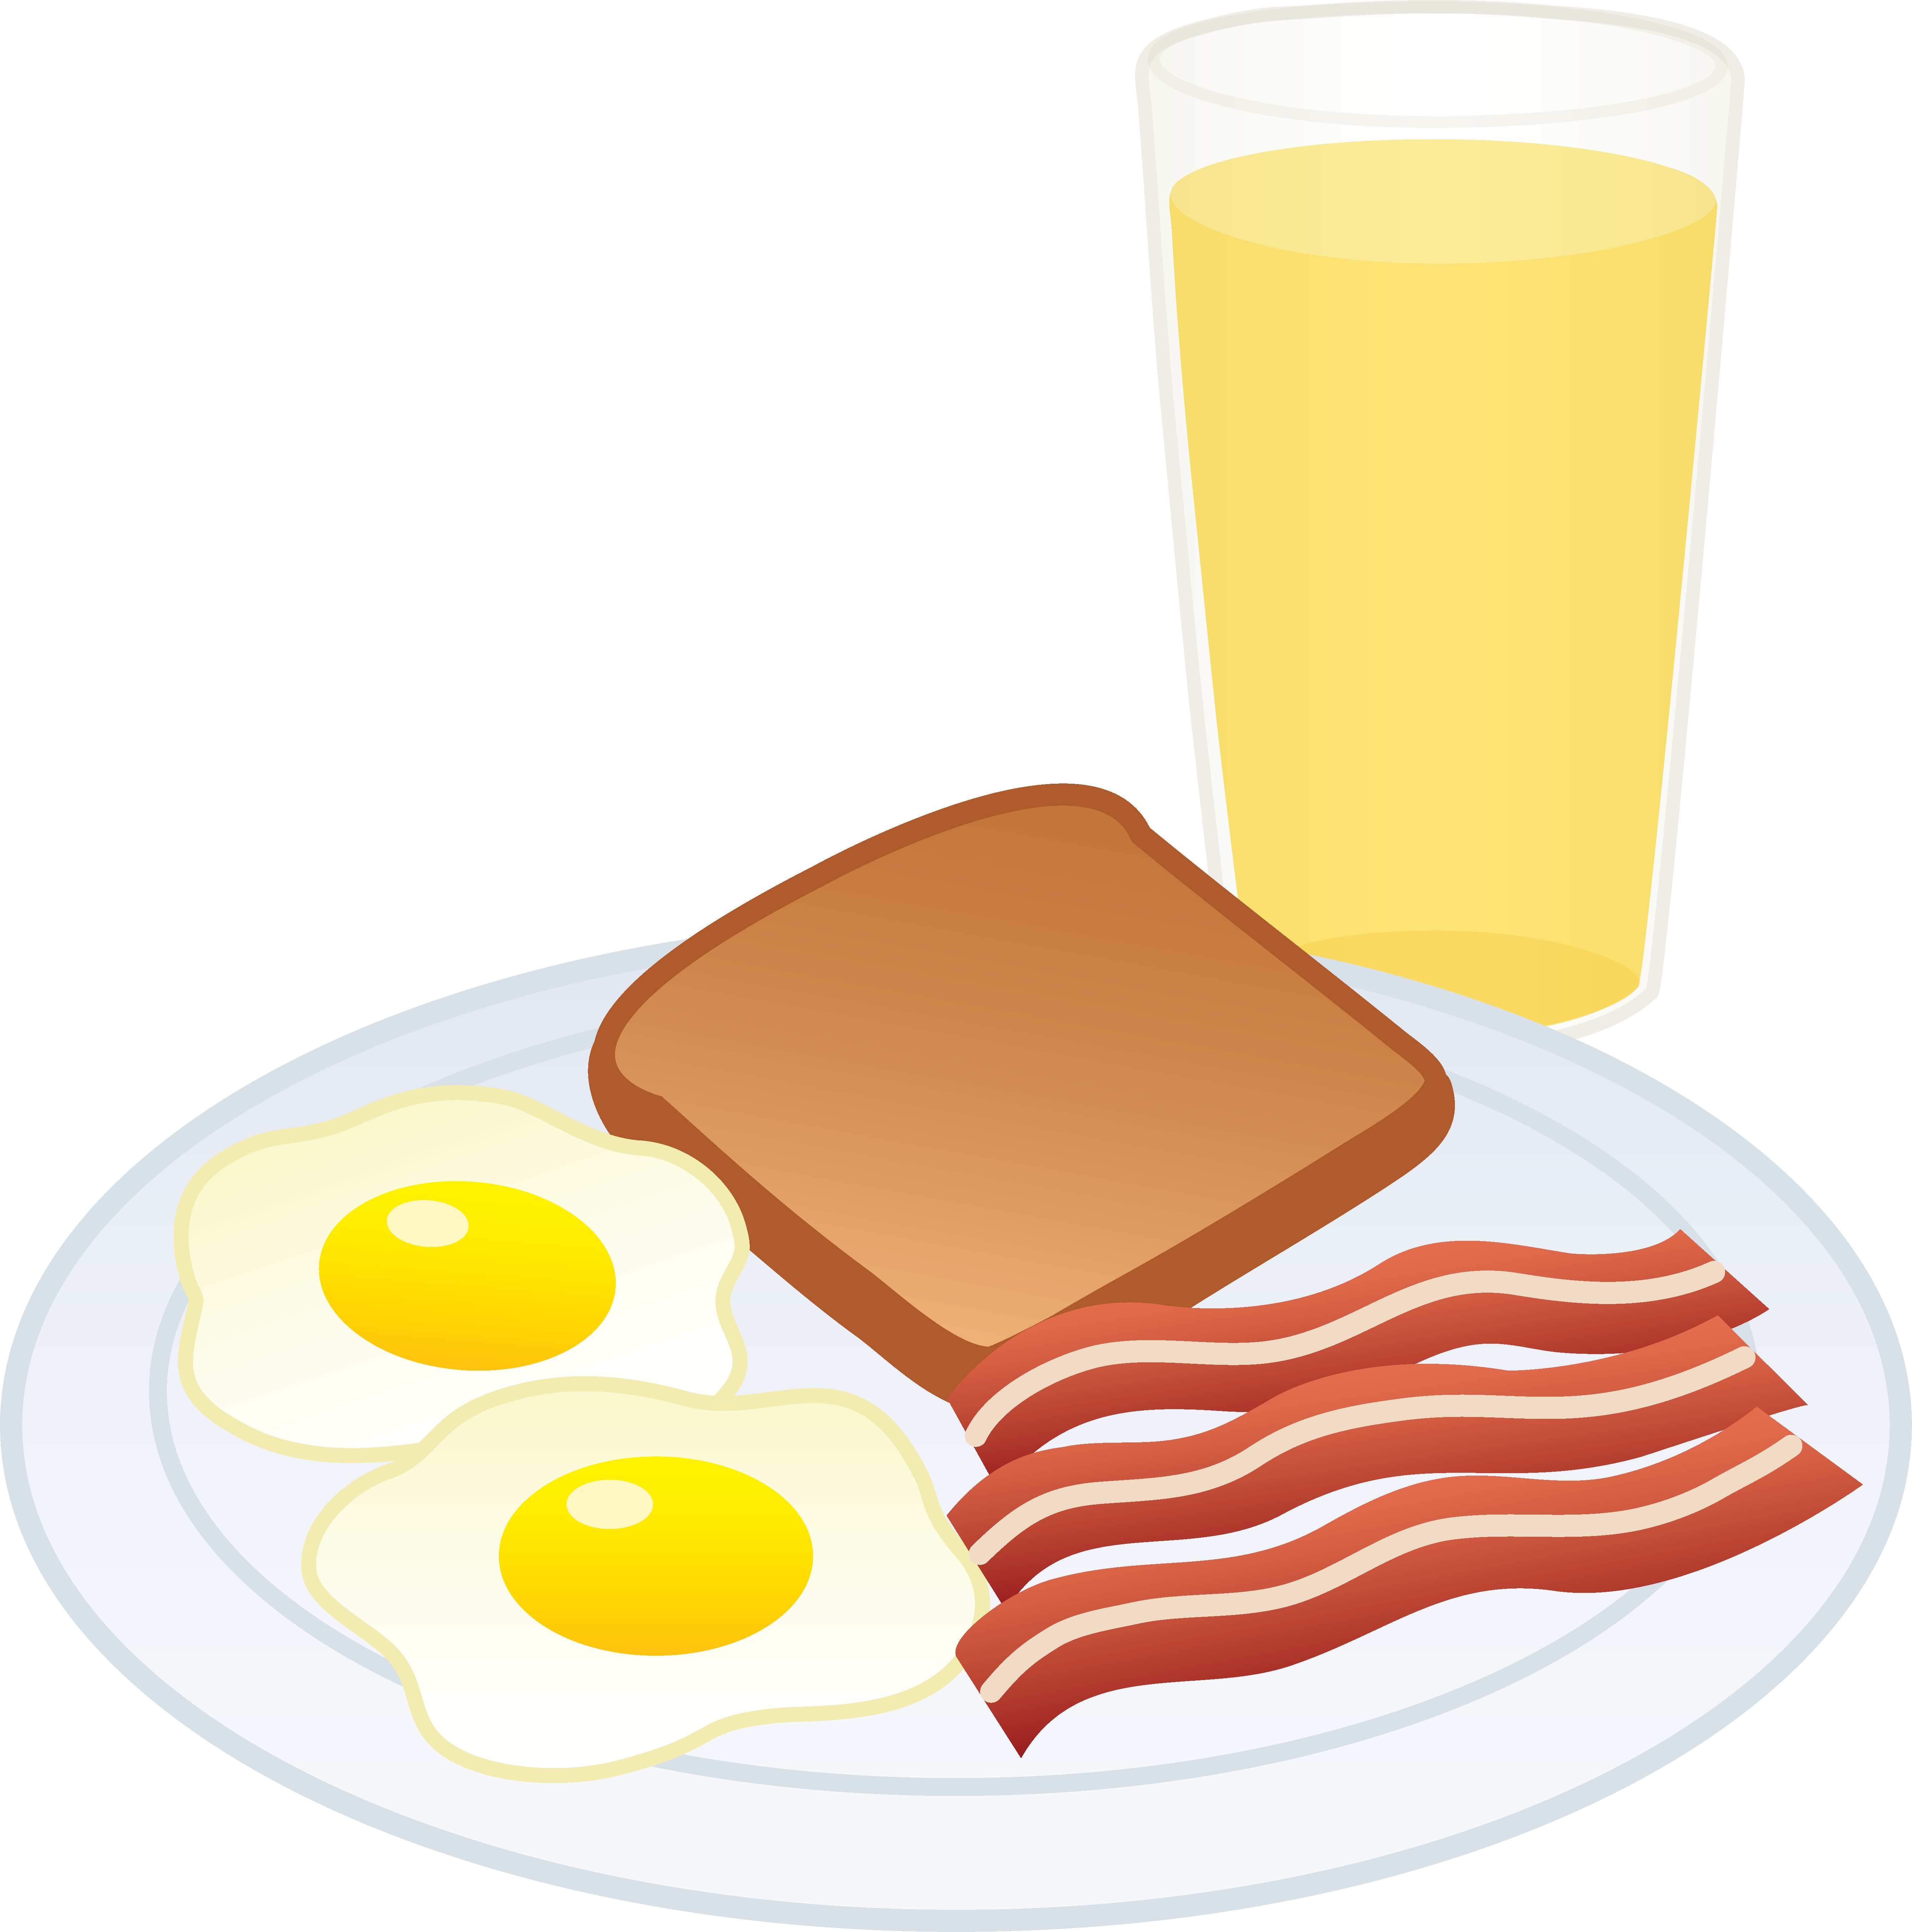 Free fried egg download. Breakfast clipart image black and white download